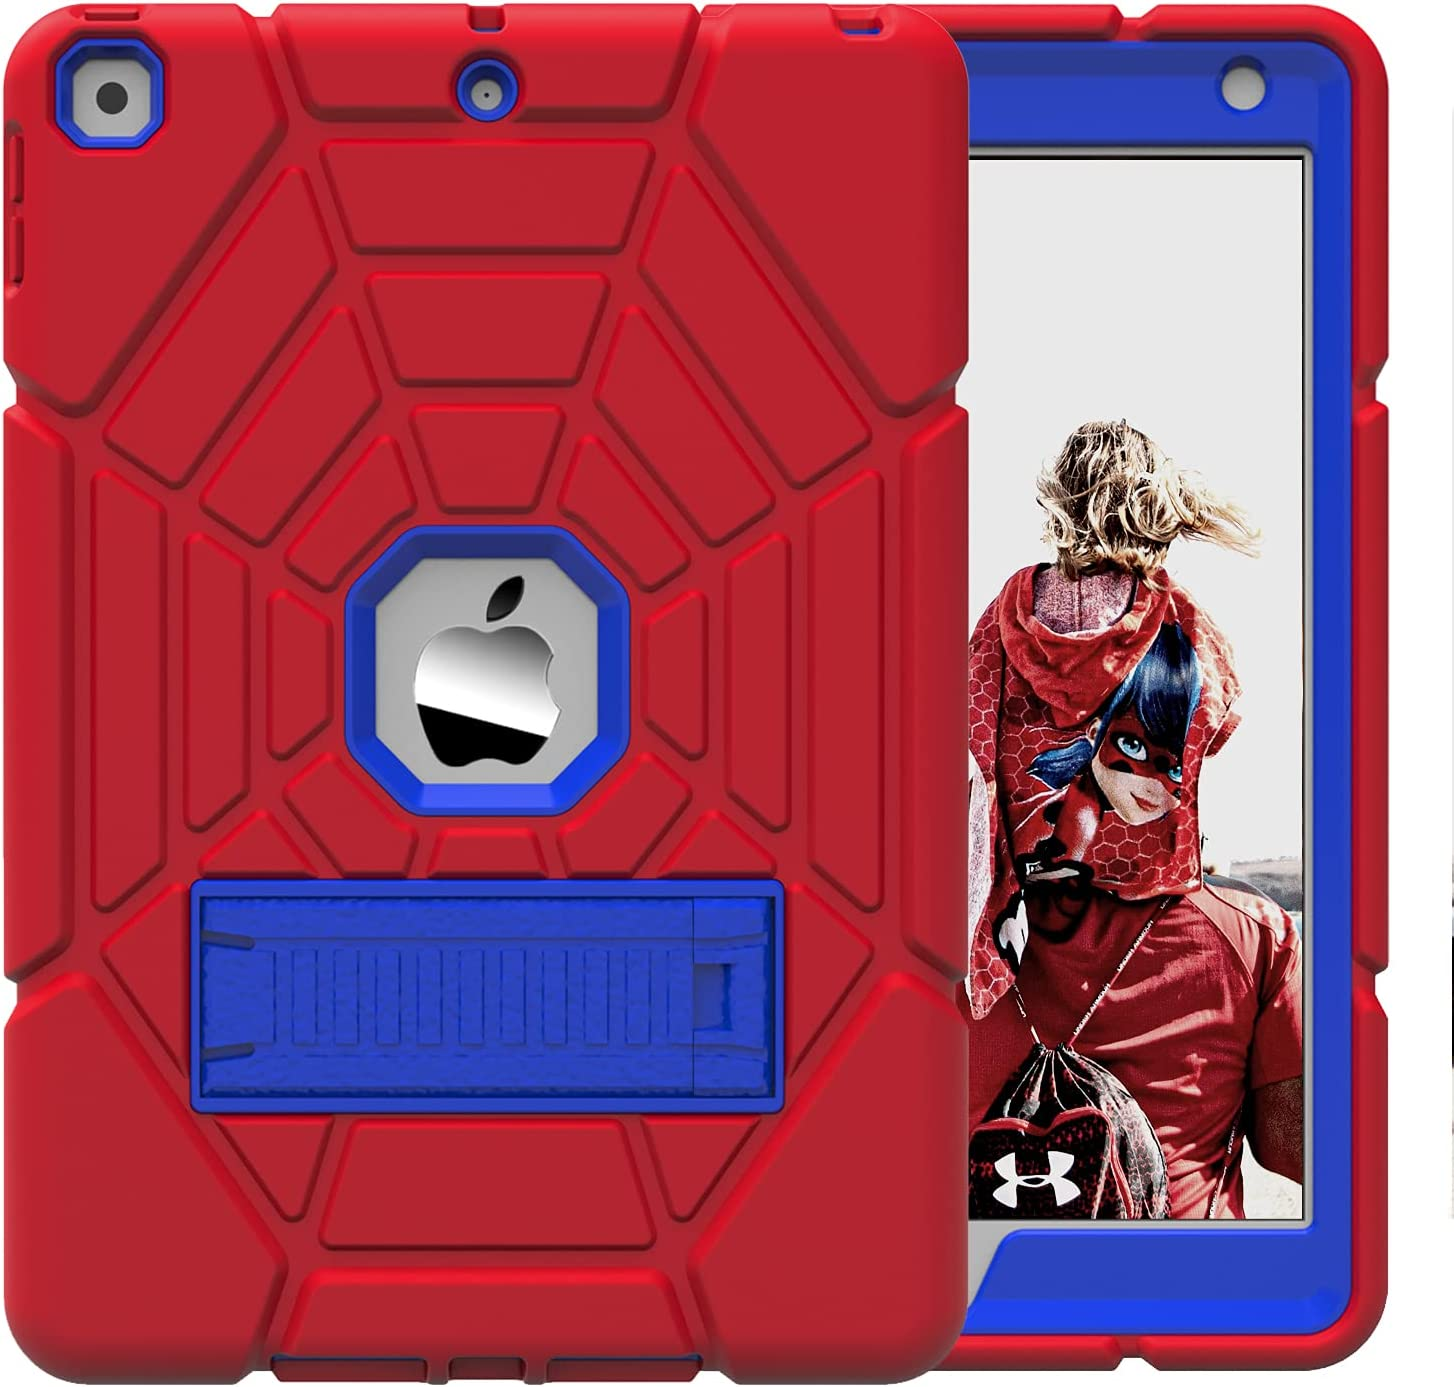 Grifobes iPad Case 6th 5th Generation for Kids, iPad 6th/5th Gen Case, Heavy Duty Protective Shockproof Rugged Kids Friendly Case with Kickstand for Apple iPad 9.7 inch 2018/2017 -Red+Blue